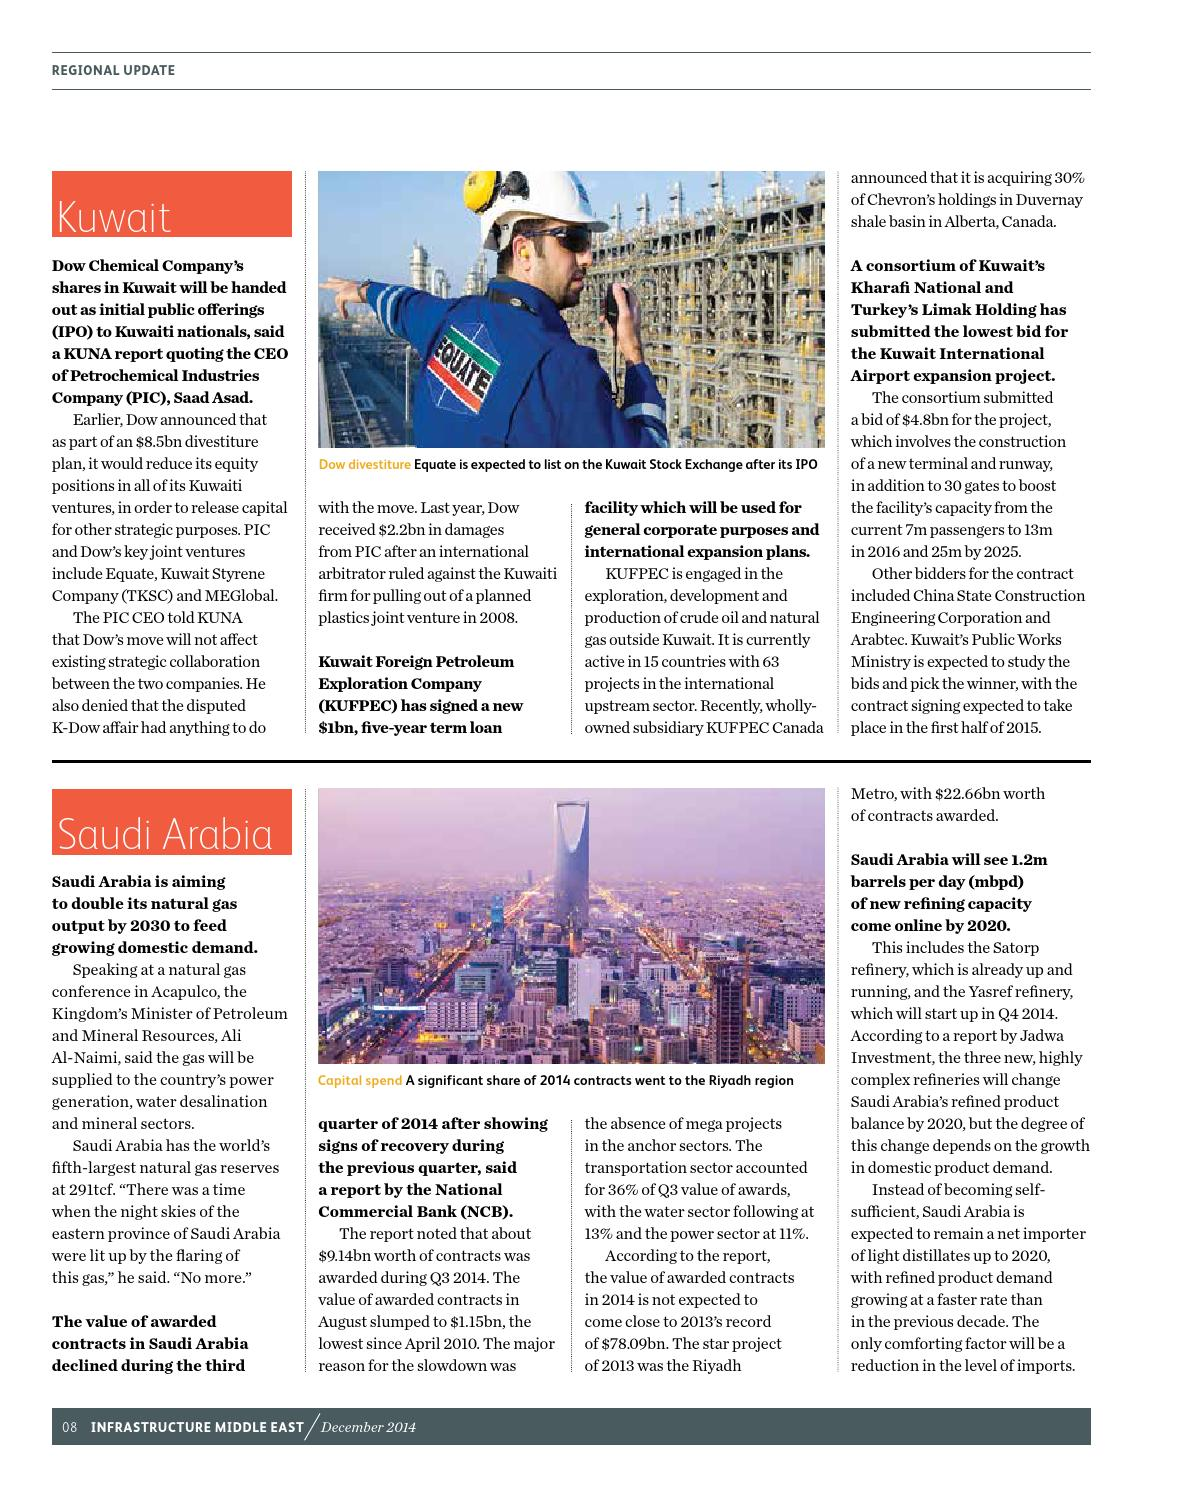 Infrastructure Middle East December 2014 by Infrastructure ME - issuu